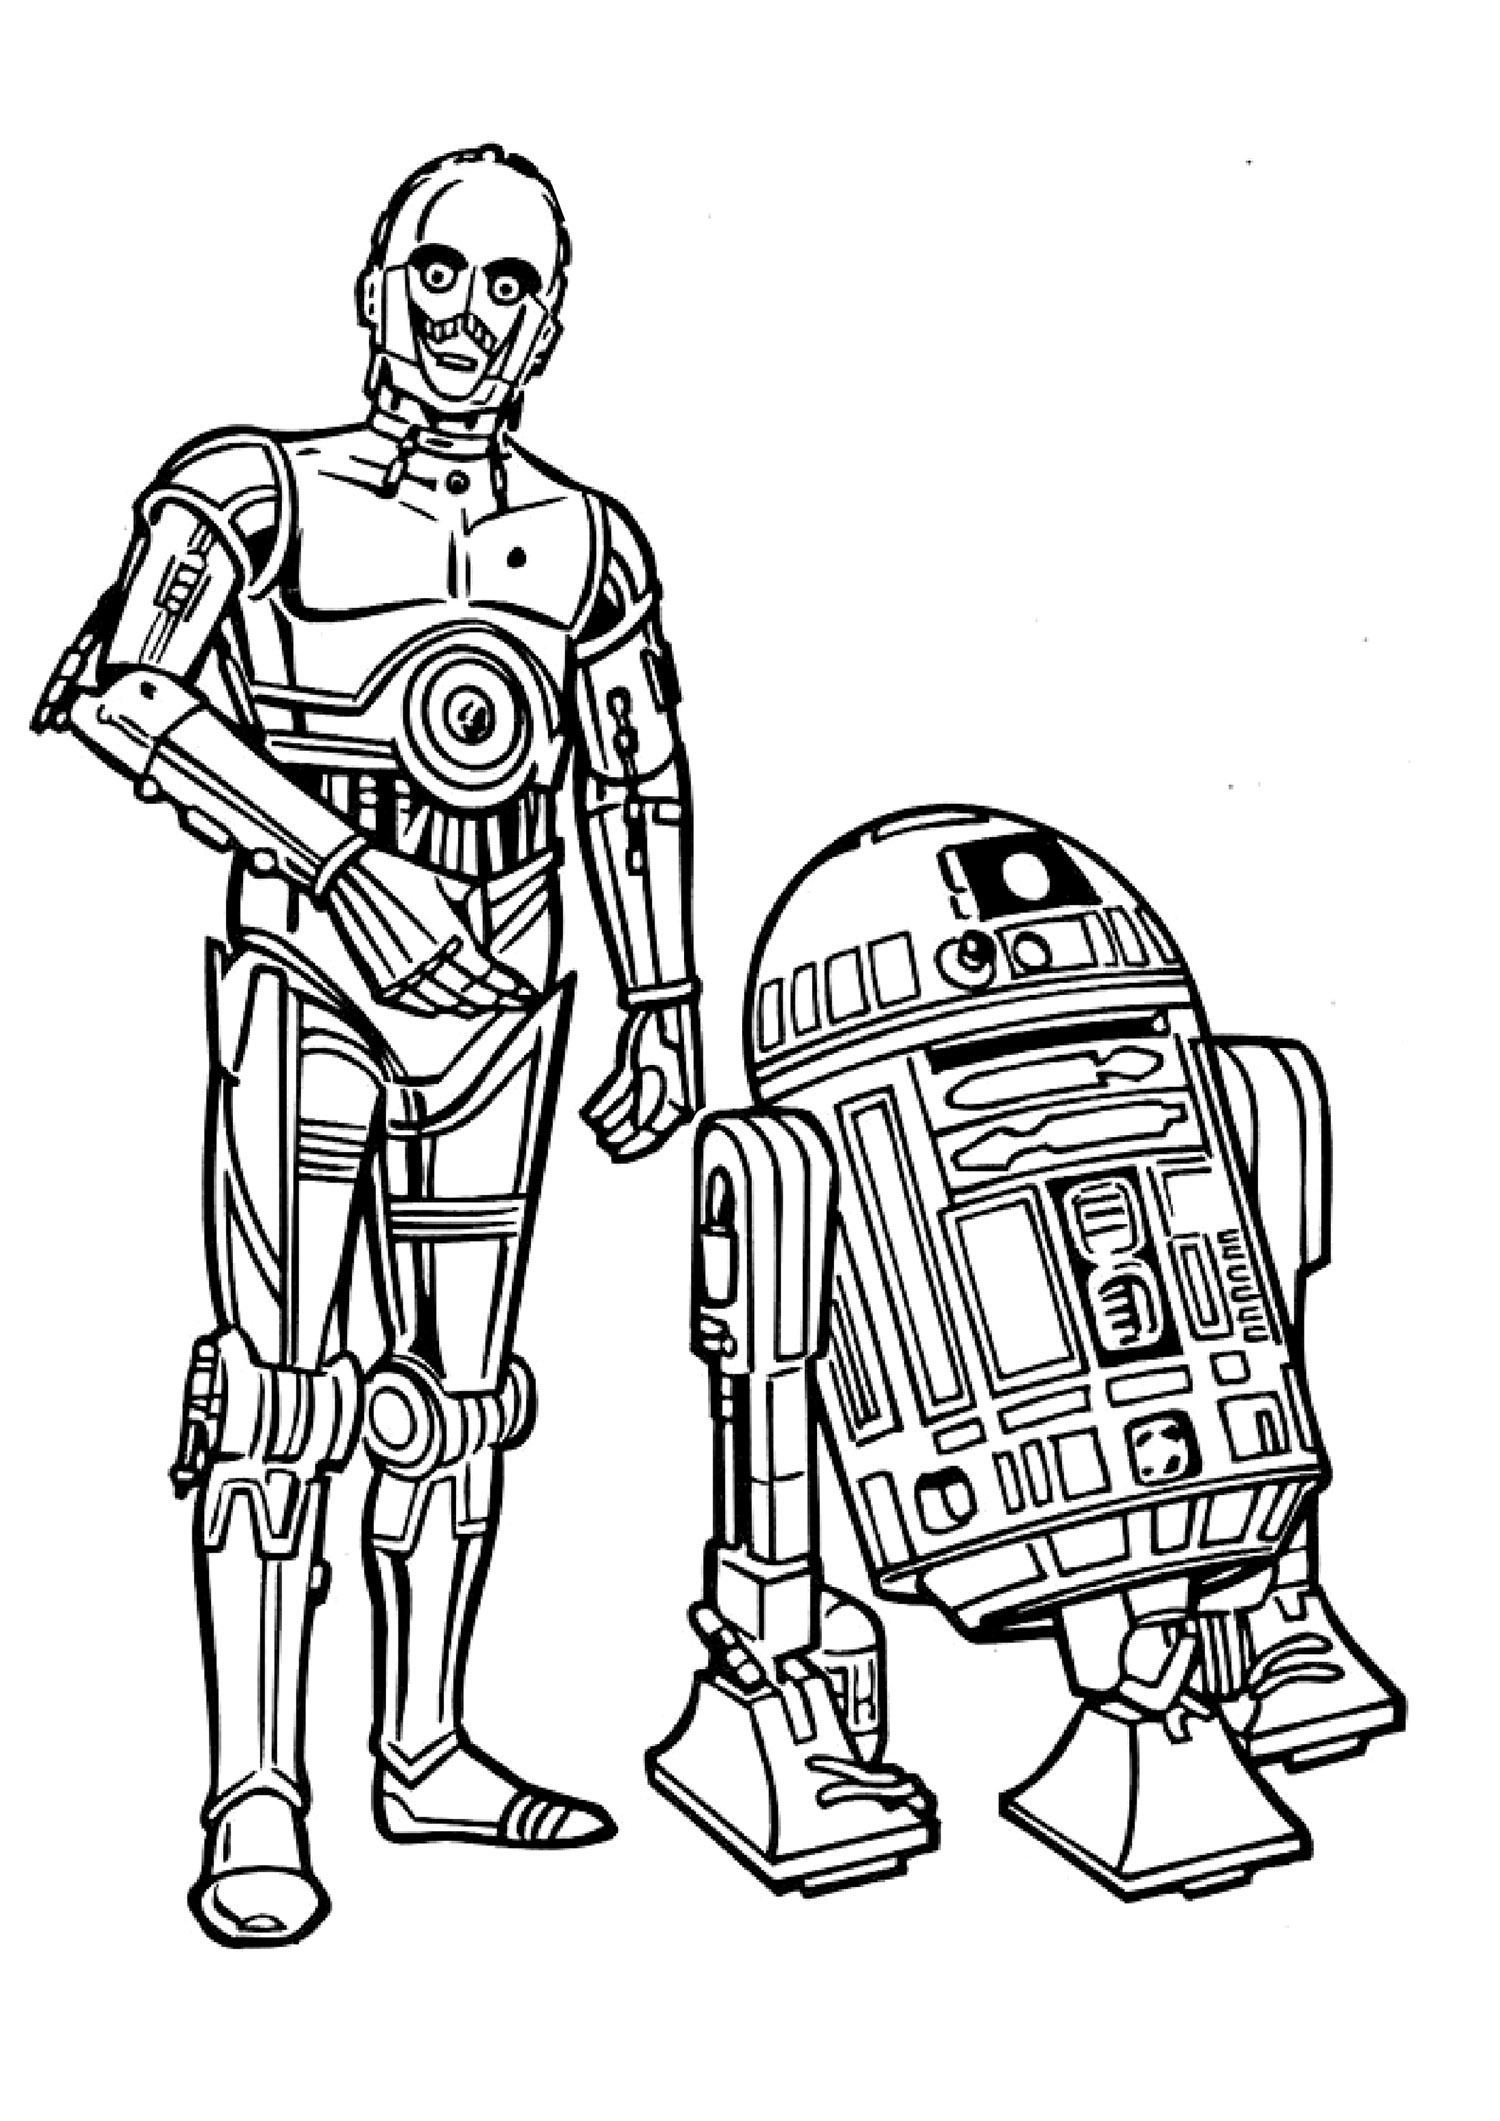 Star Wars 7 Coloring Pages   Free download on ClipArtMag